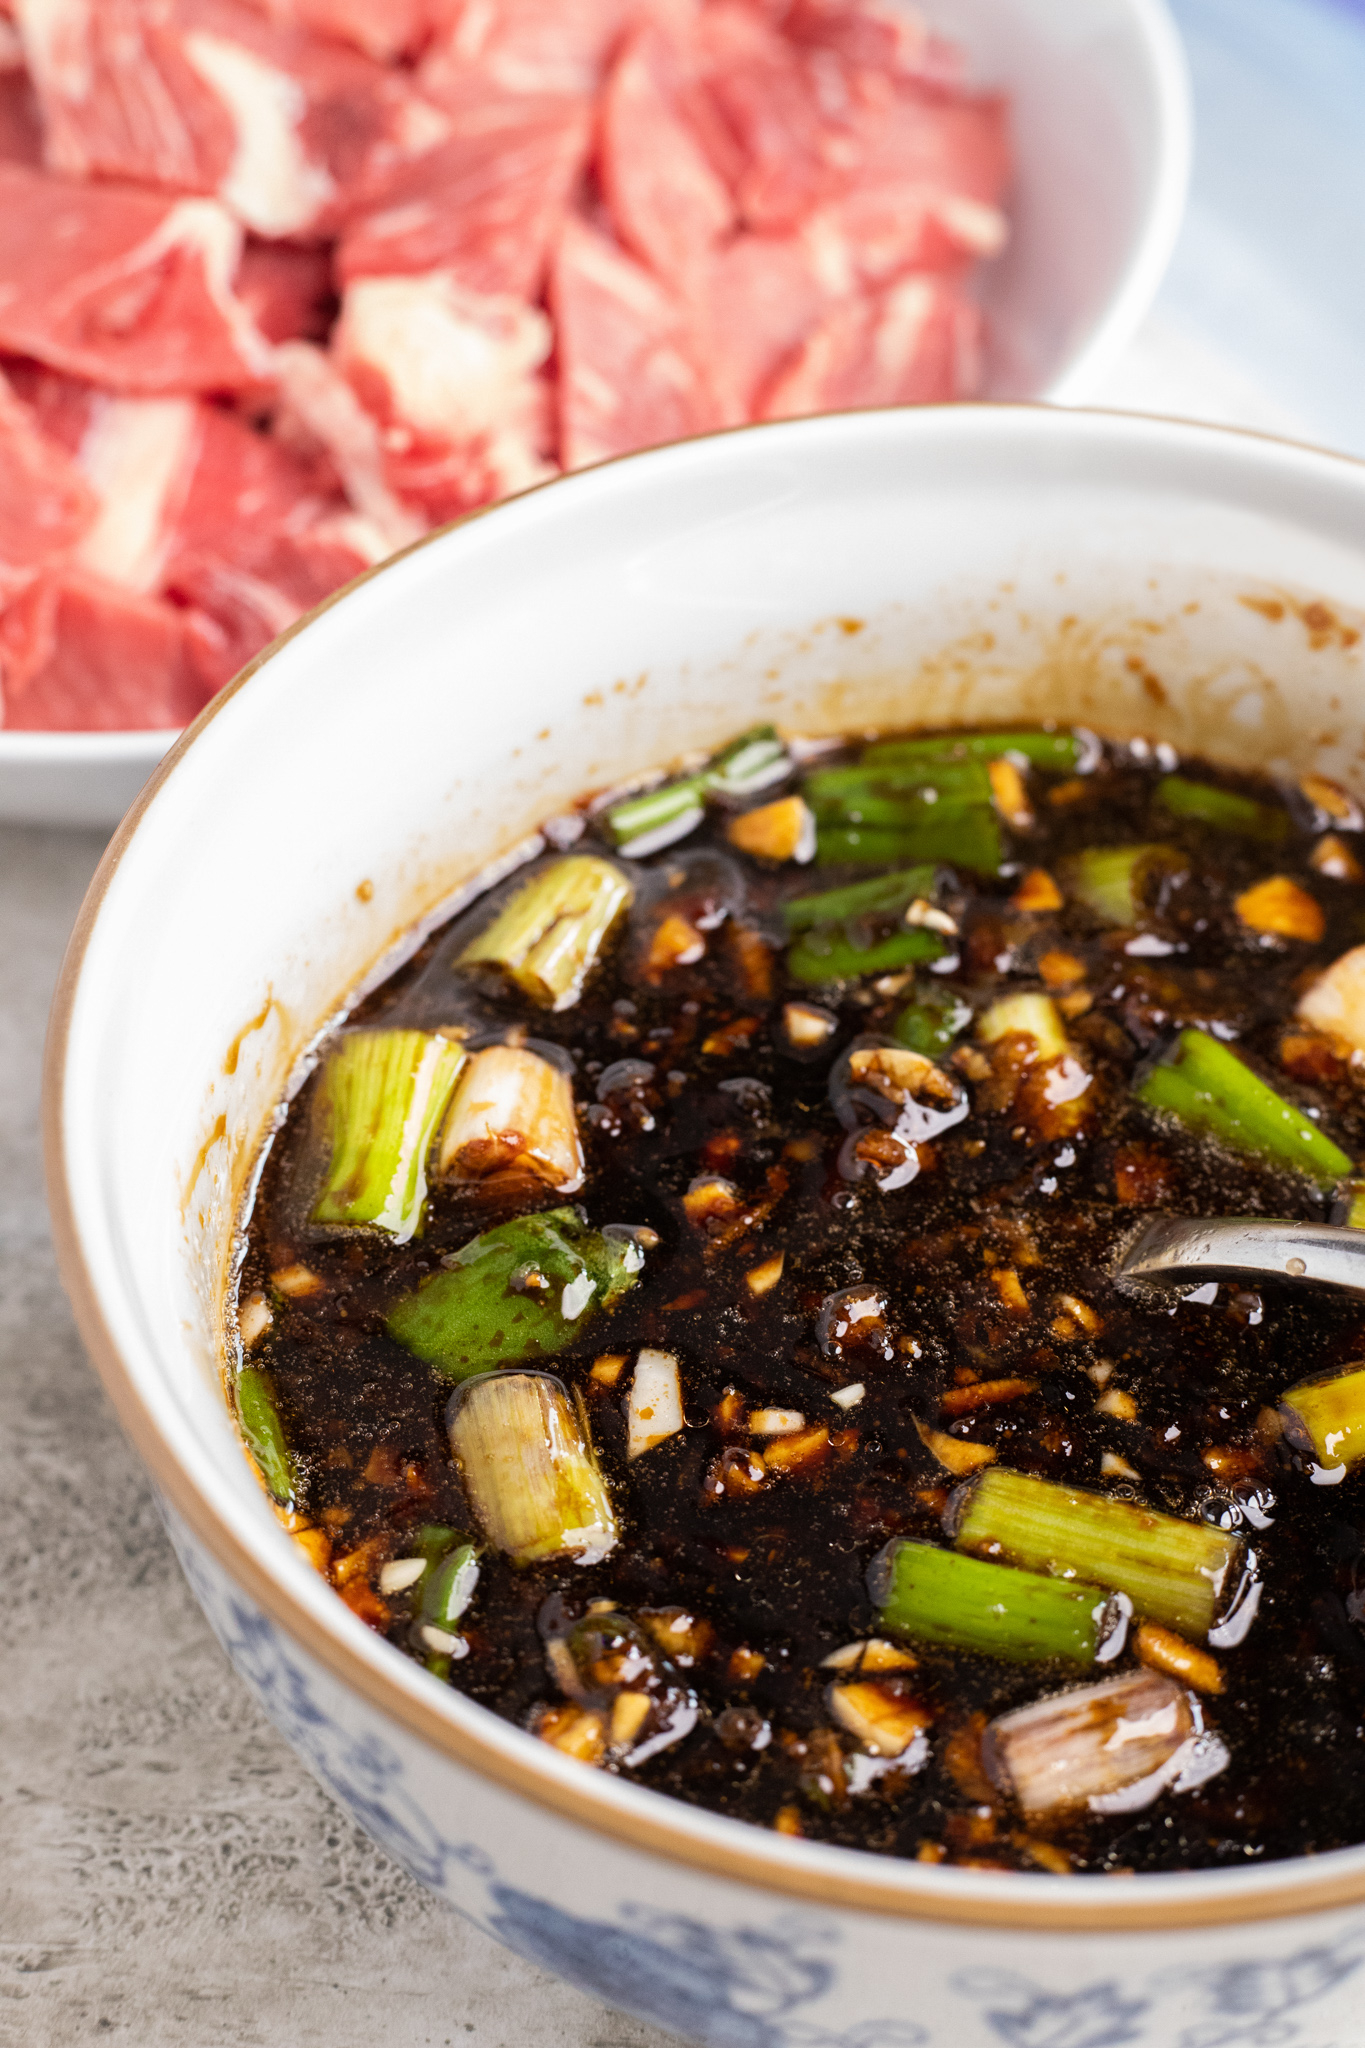 Beef Bulgogi with Zucchini Noodles in a bowl.